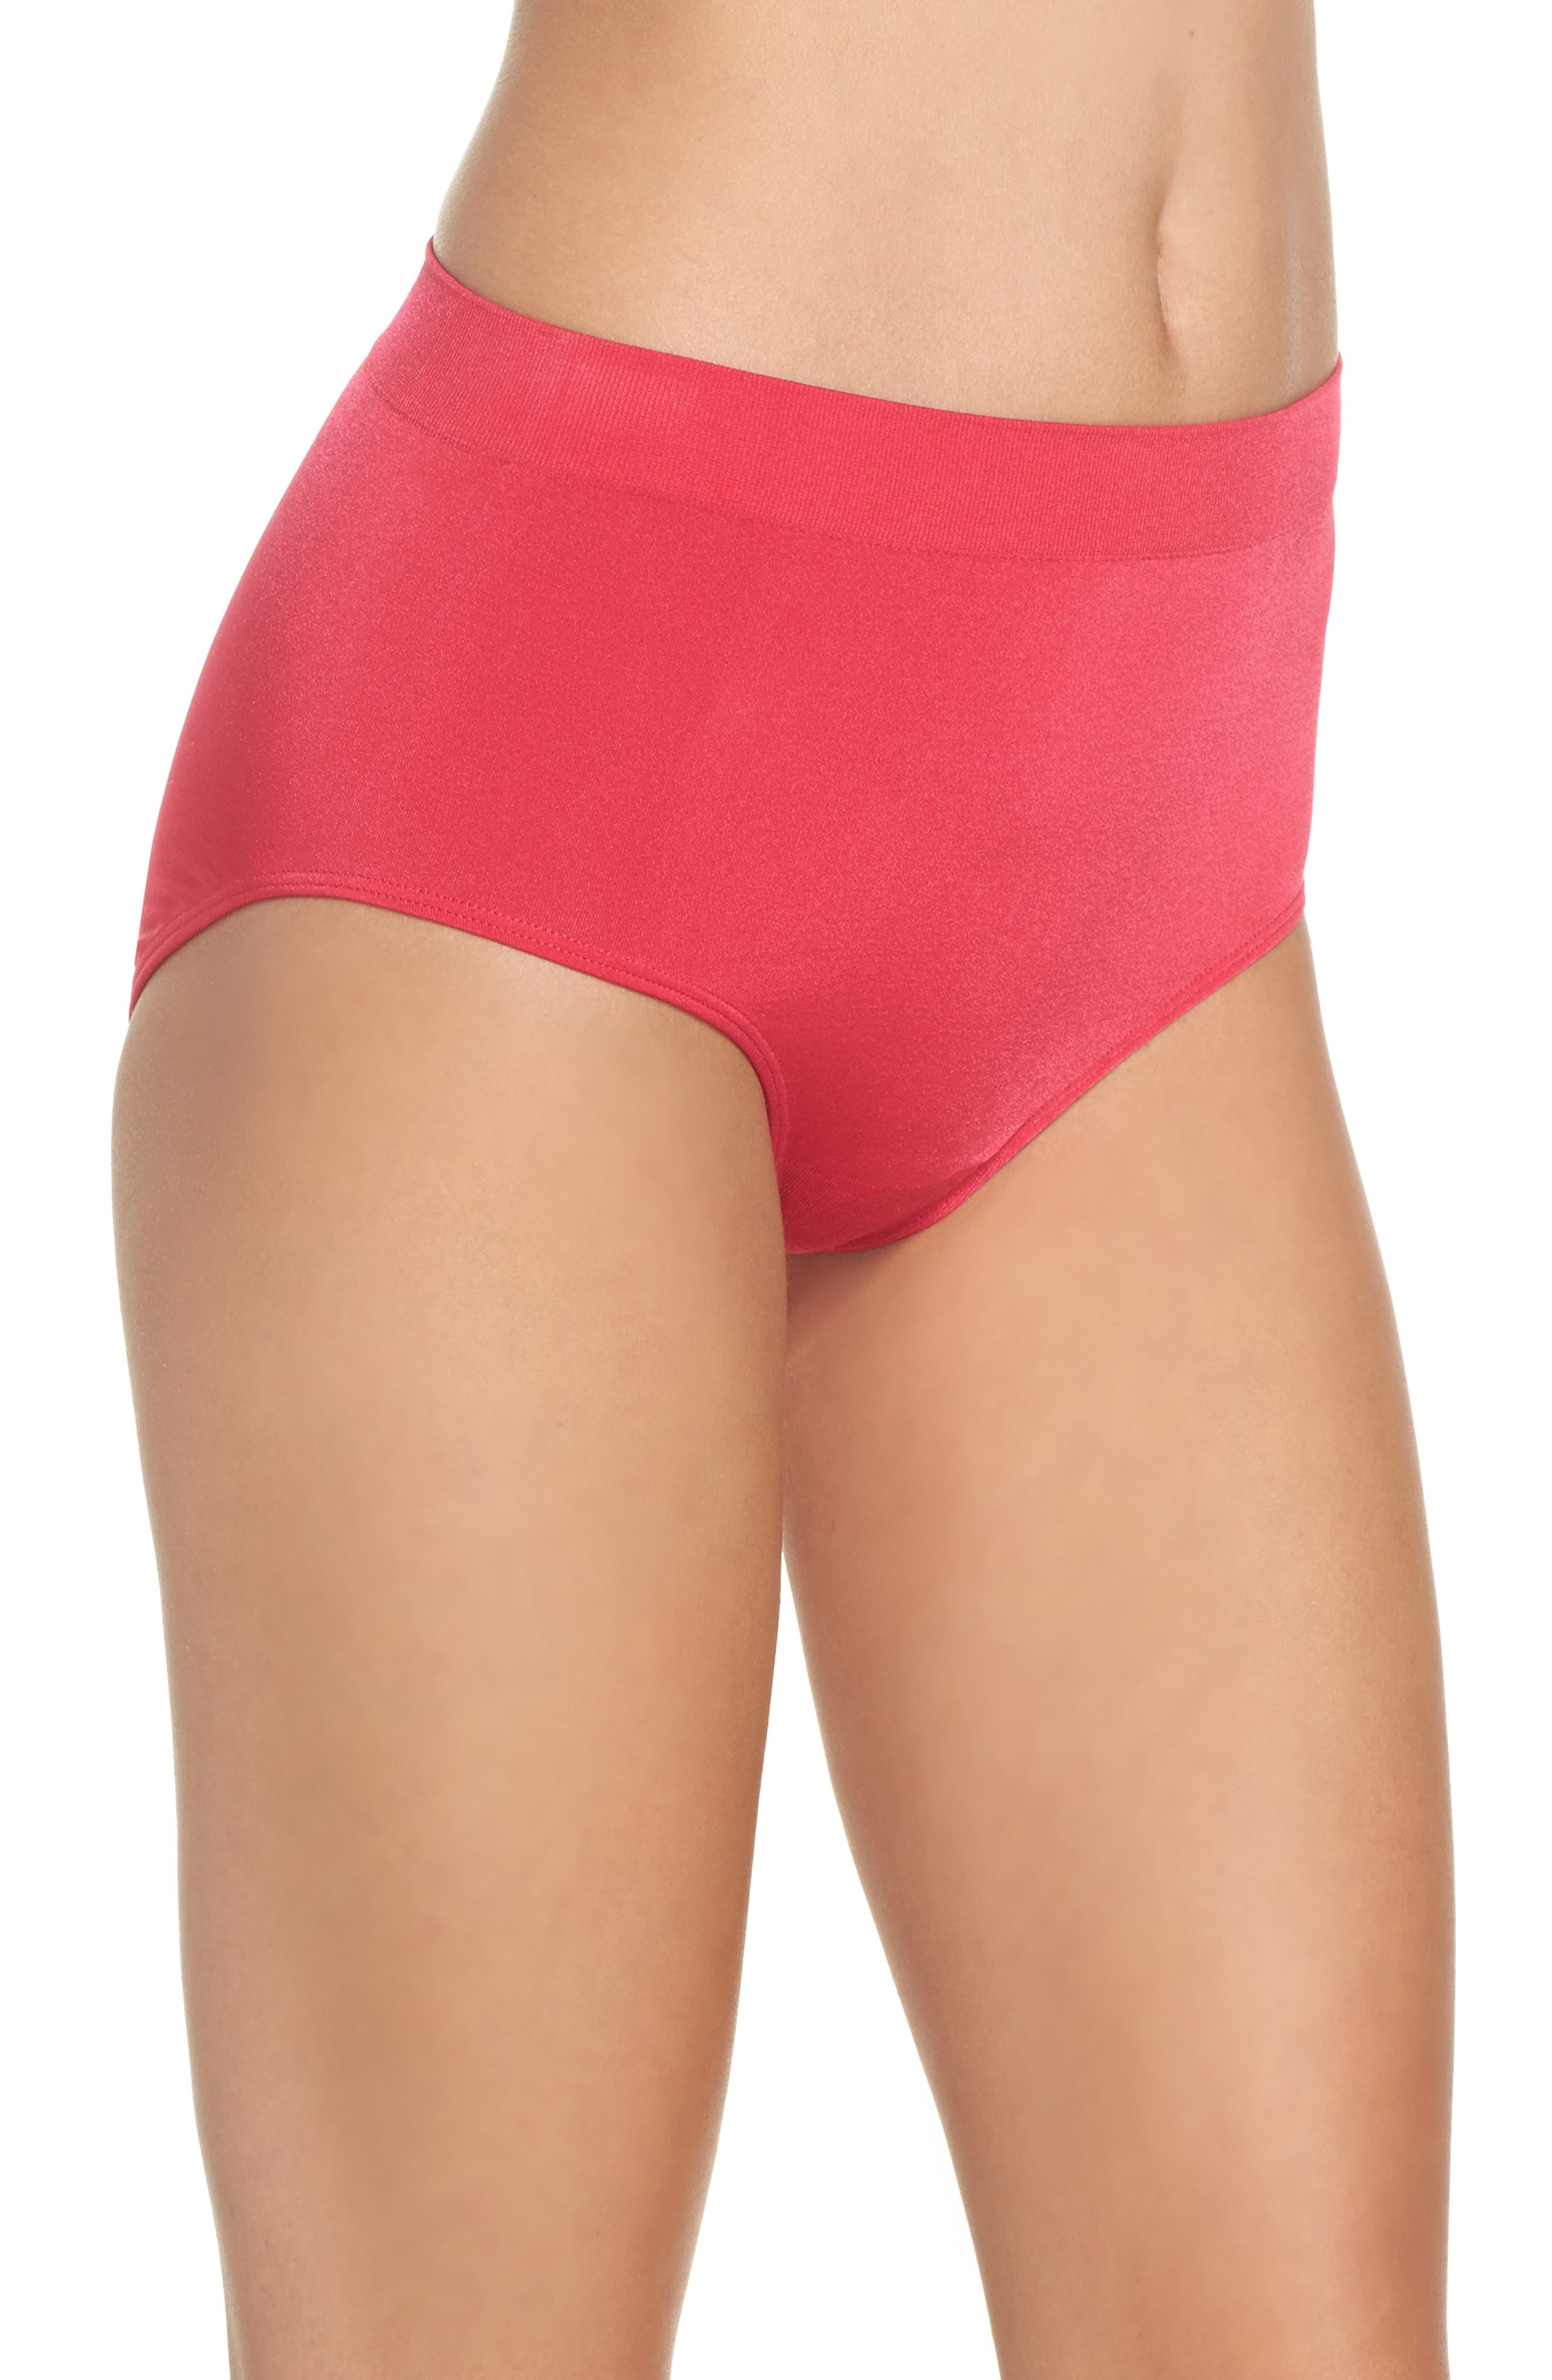 B Smooth Briefs,                             Alternate thumbnail 148, color,